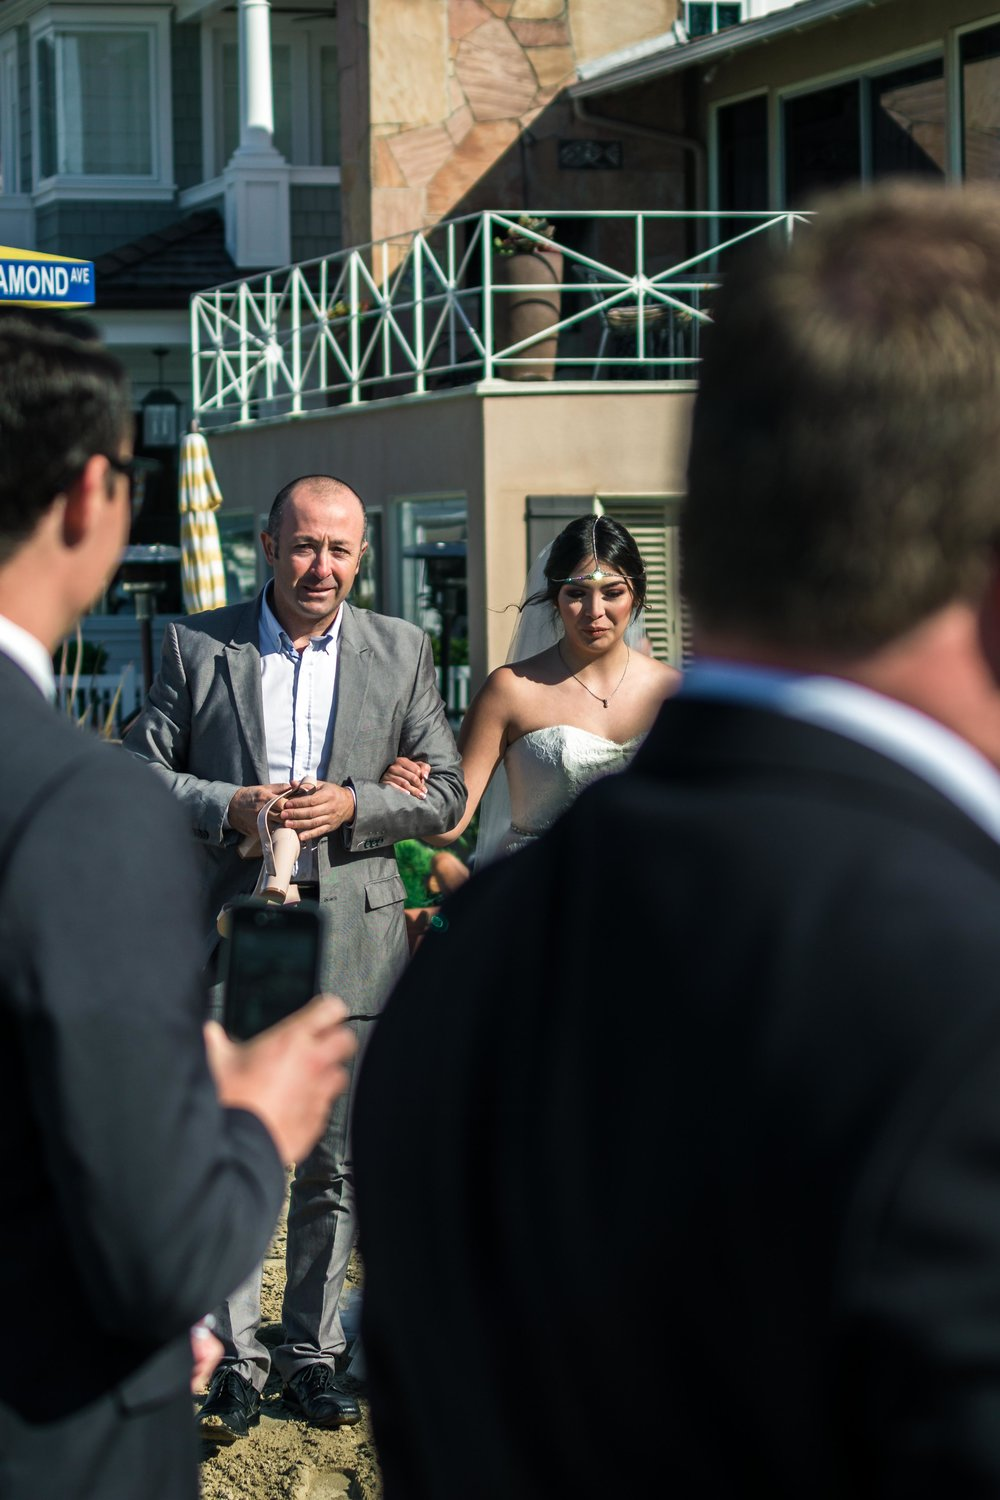 The brides father walking her down the aisle during her ceremony on Balboa Island